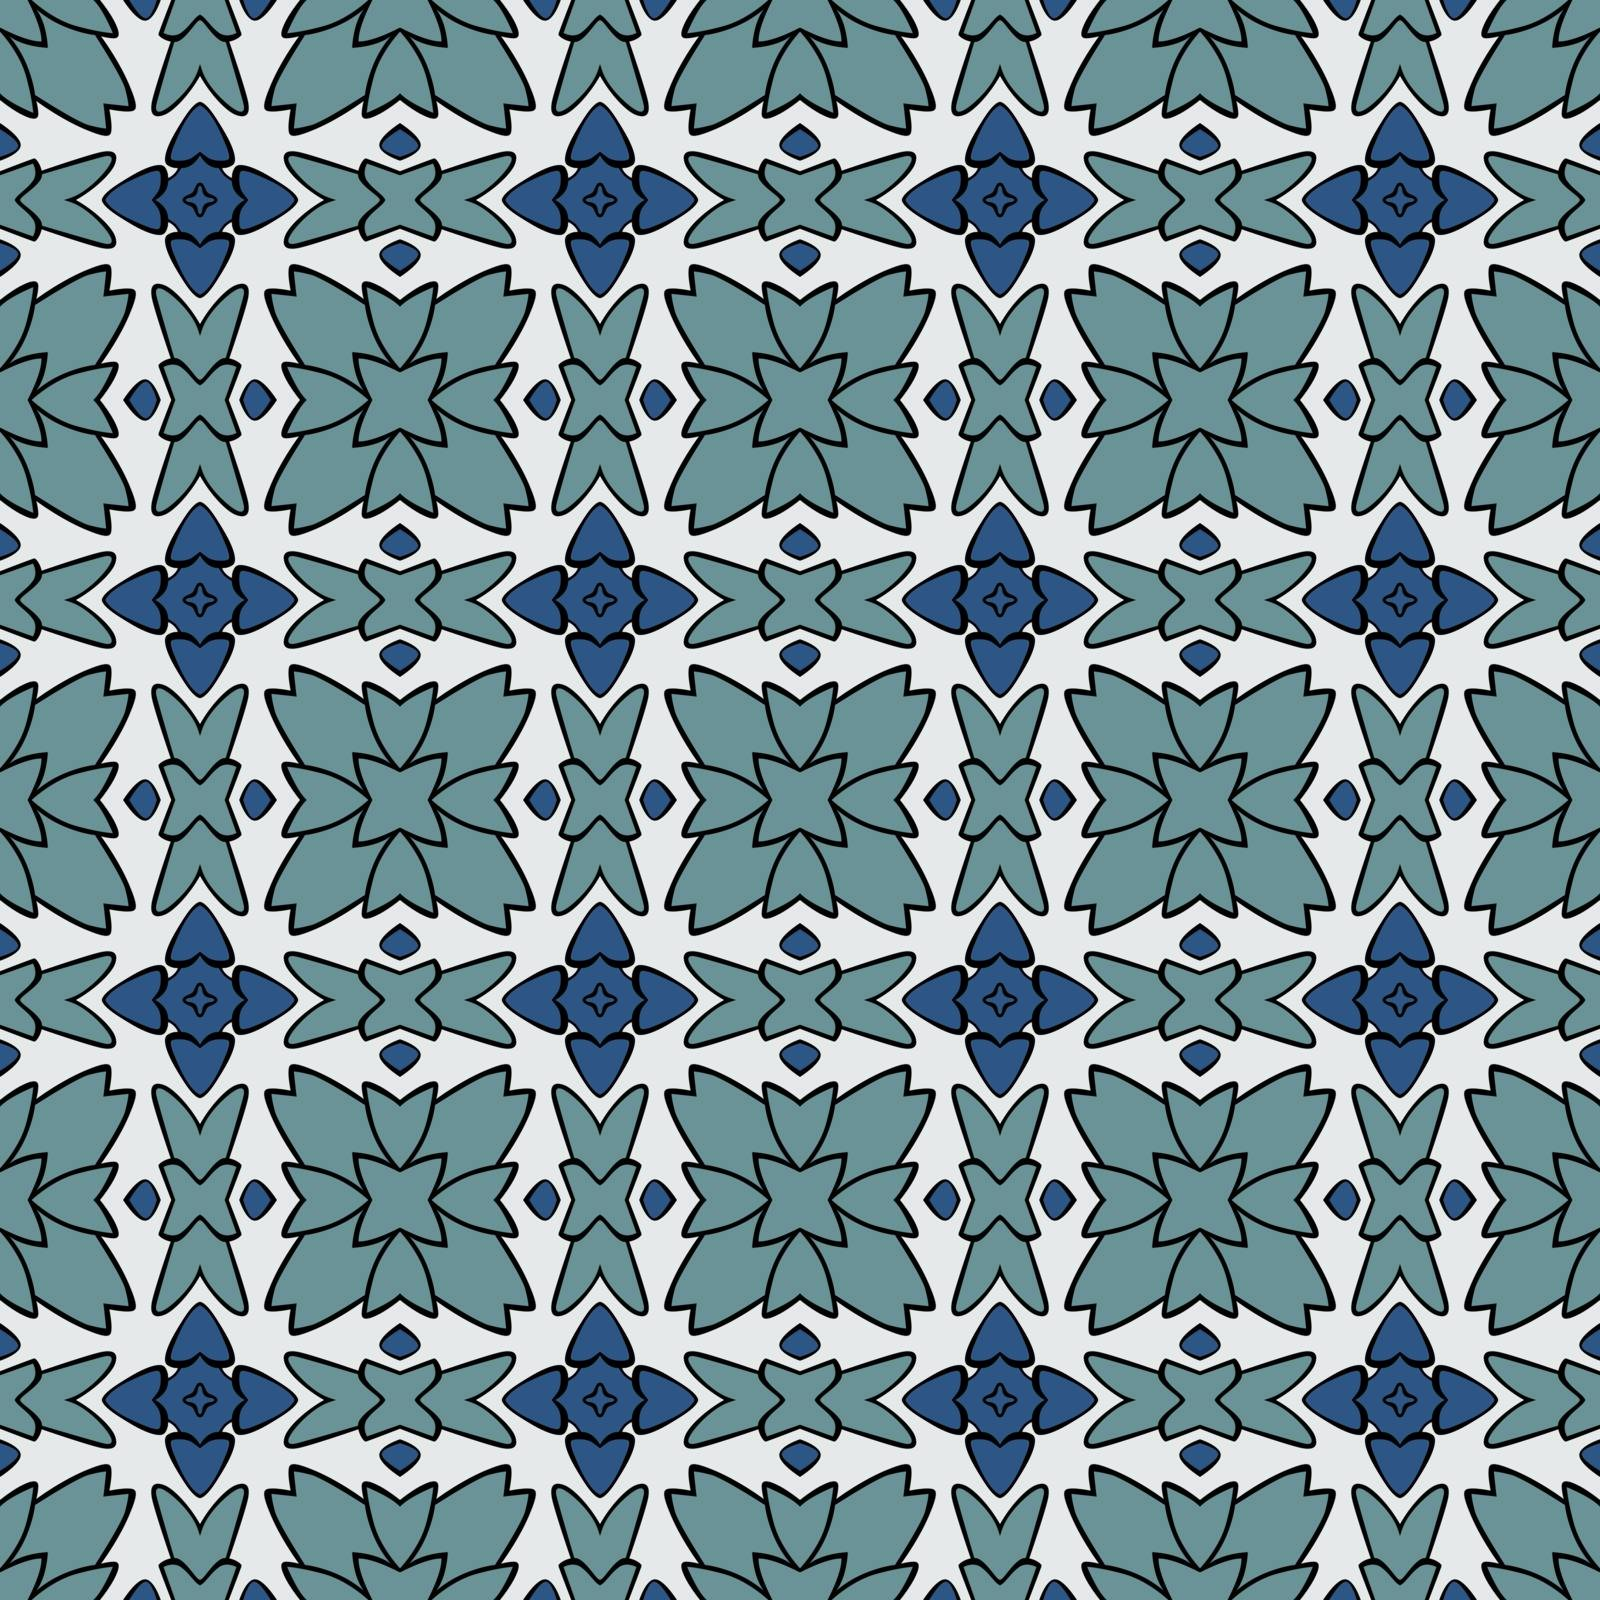 Seamless illustrated pattern made of abstract elements in white, turquoise, blue and black